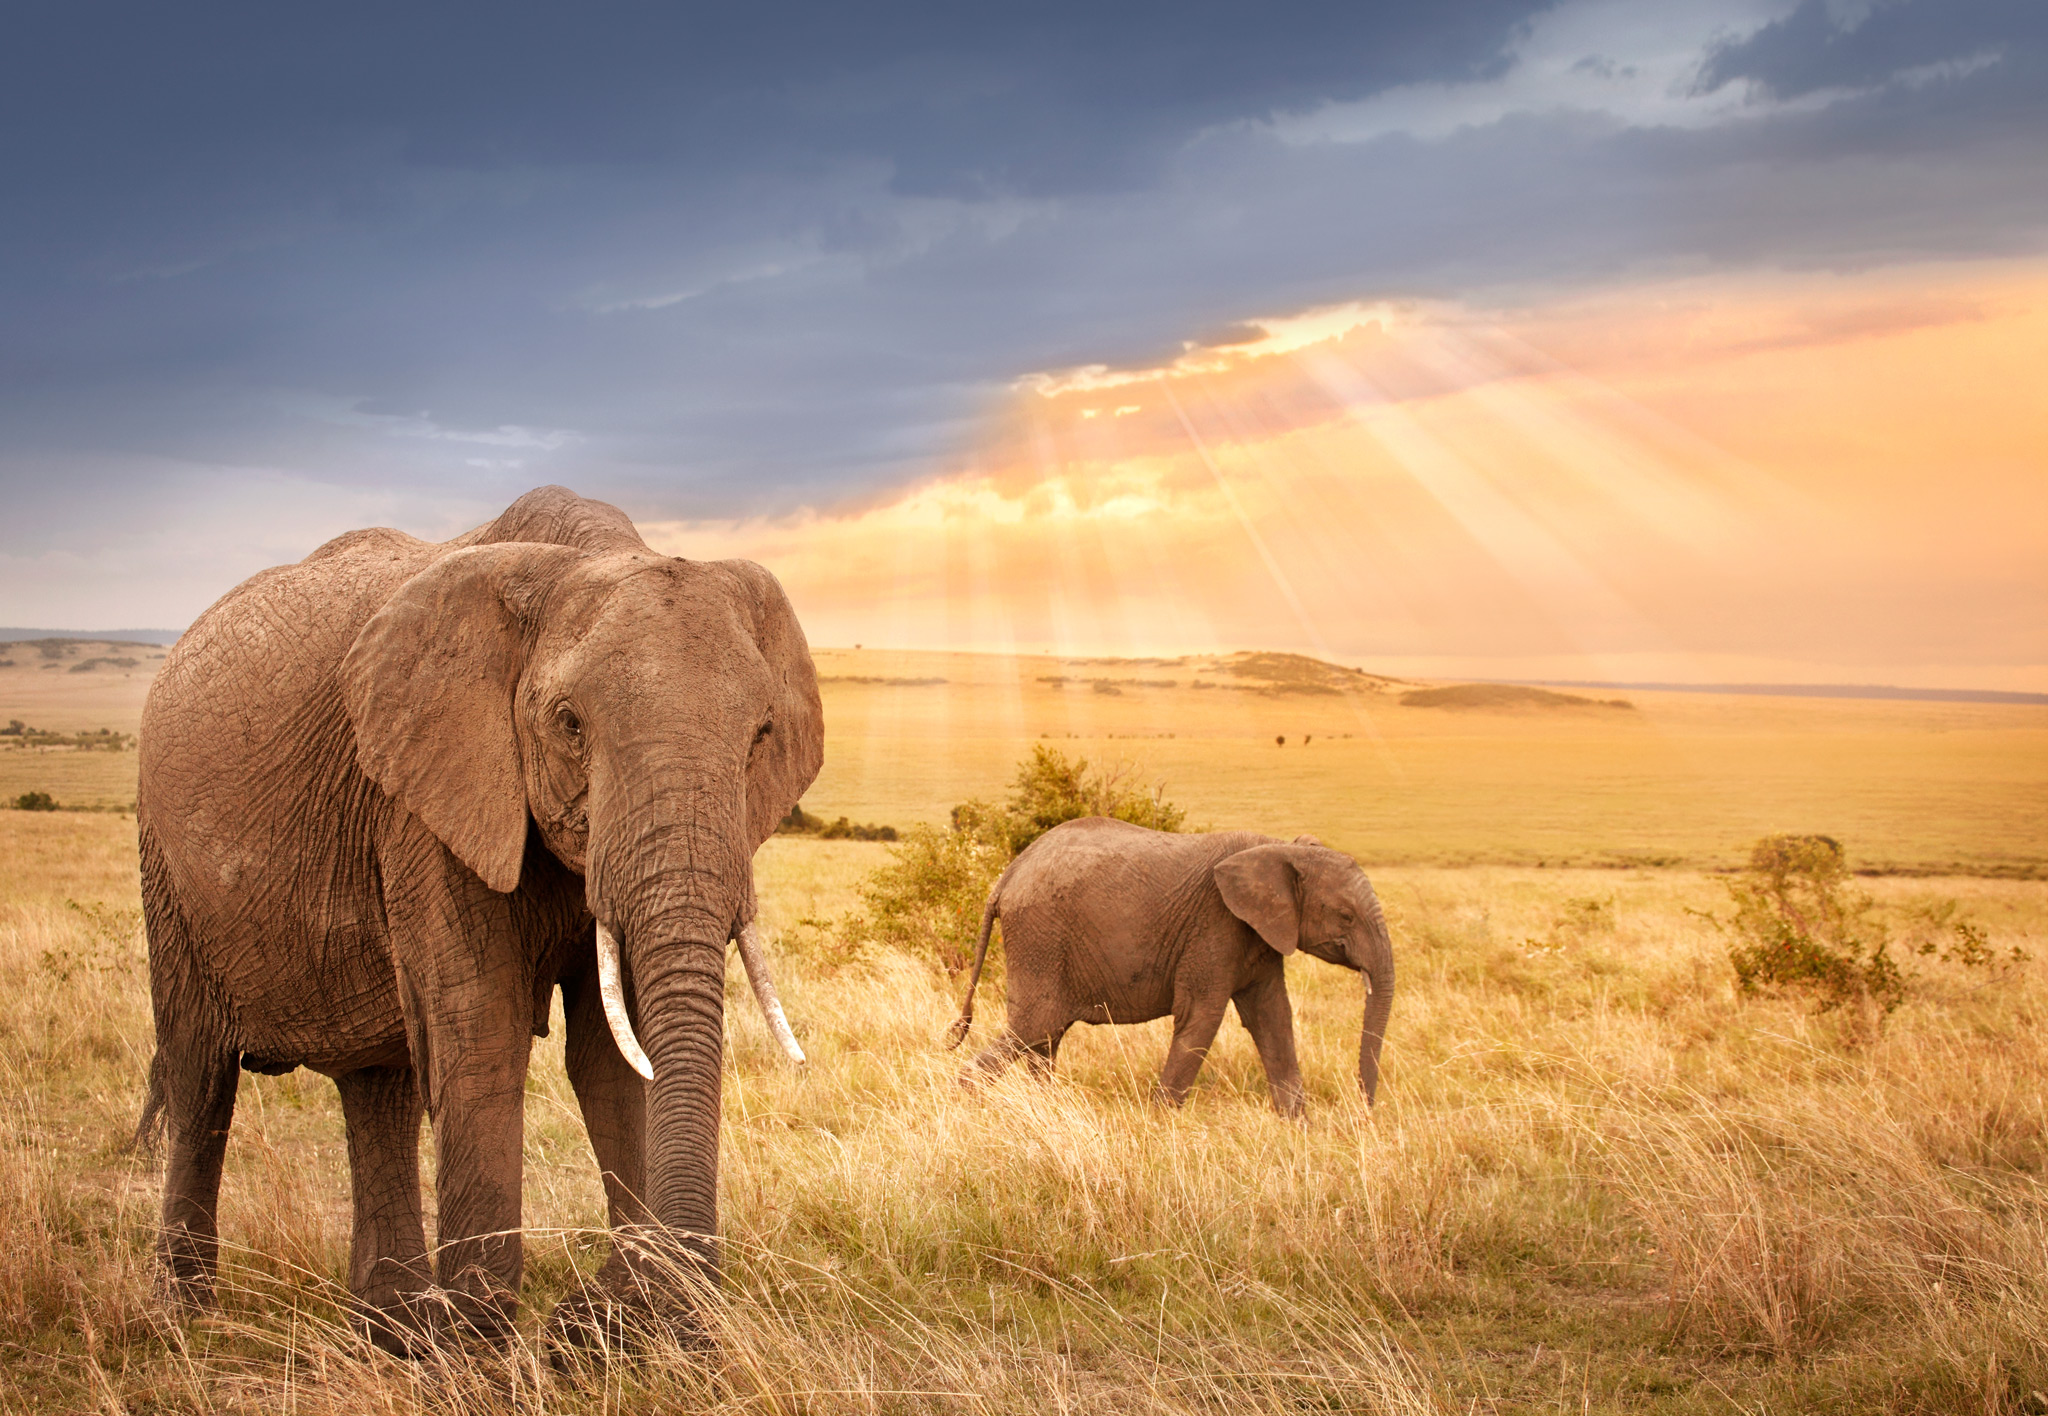 Elephants_walking_Grassland_Sunset